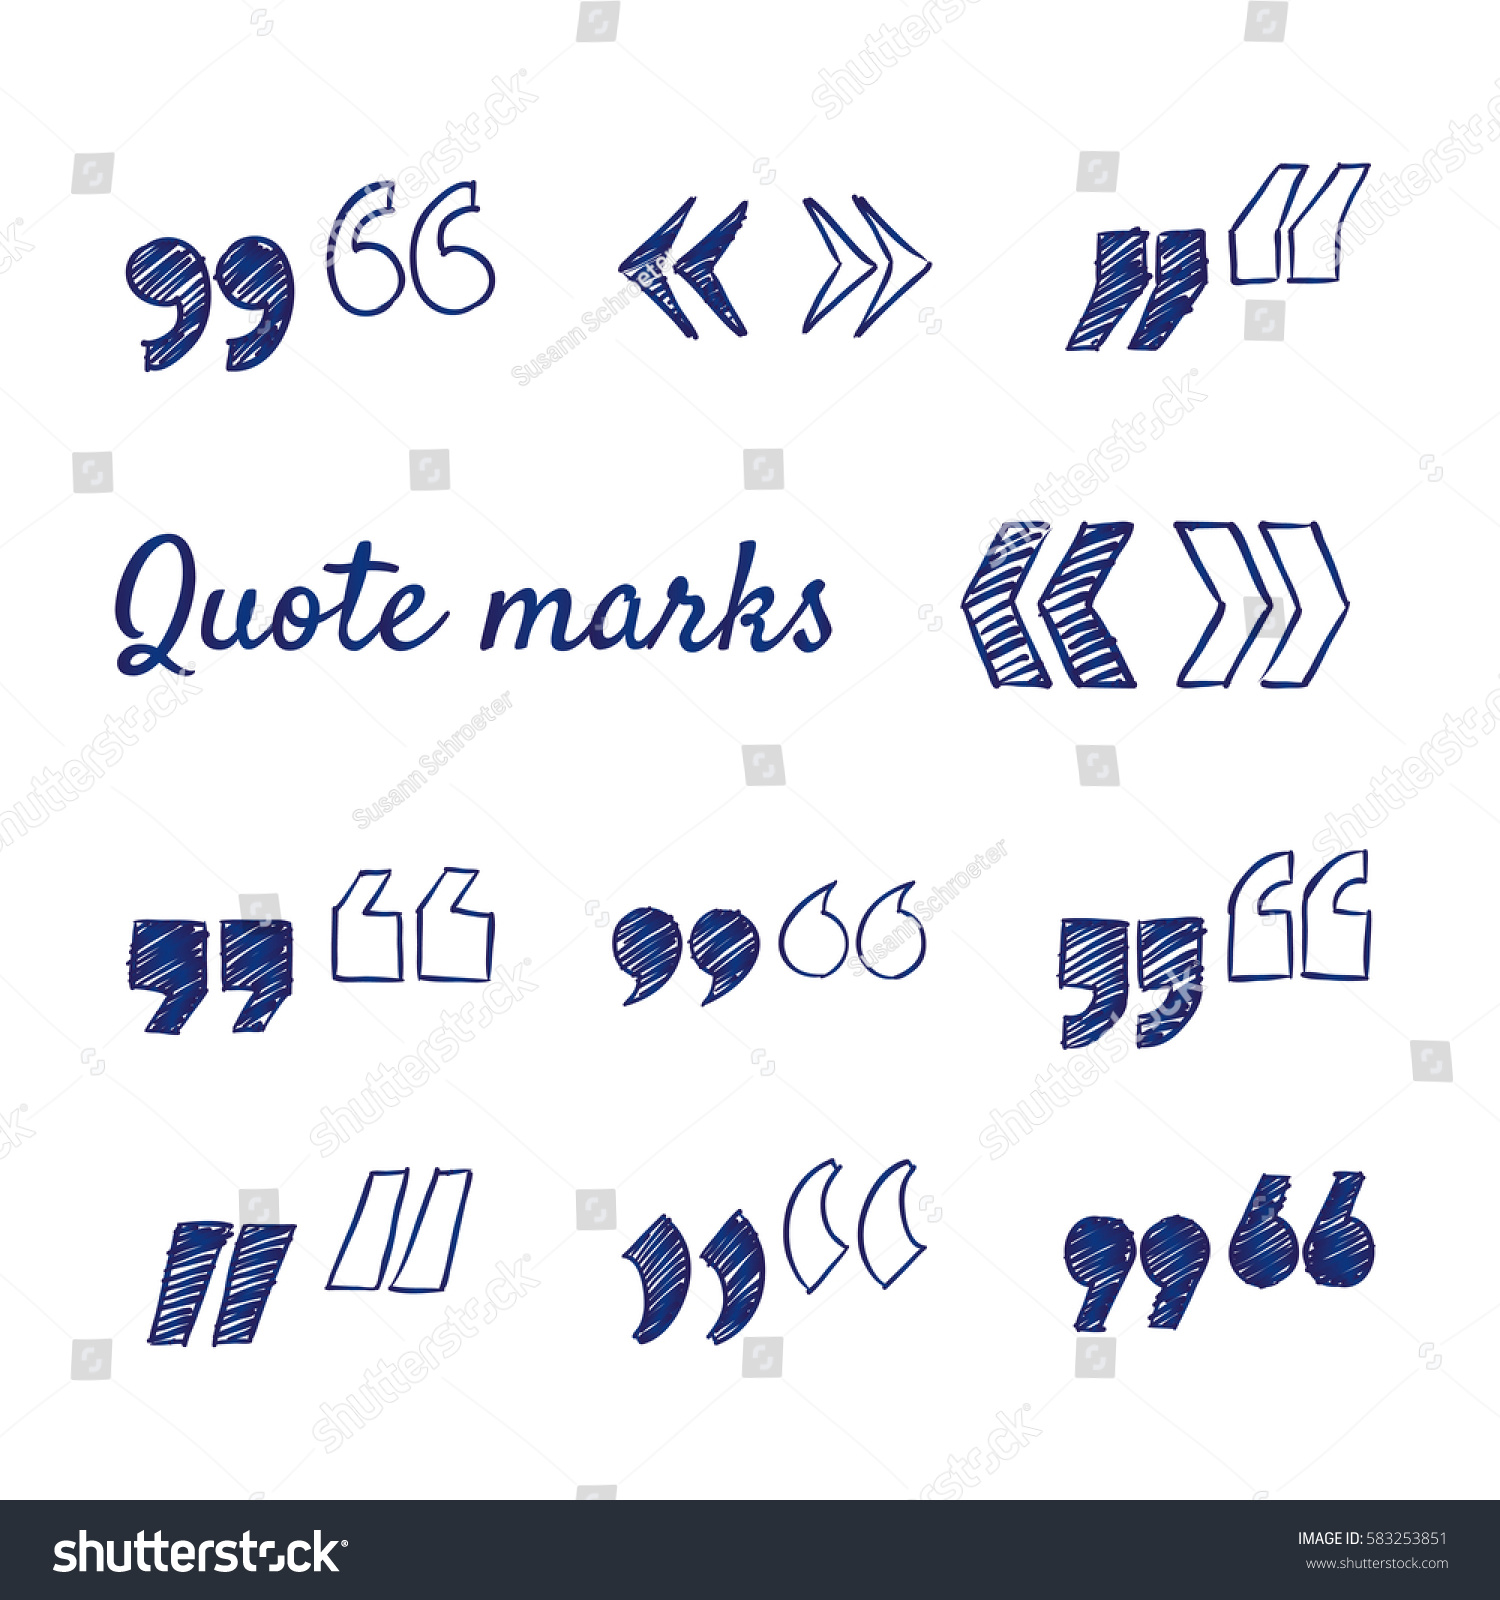 Doodle set quote marks quotes icon stock vector 583253851 doodle set of quote marks quotes icon set hand drawn vector sketch biocorpaavc Image collections